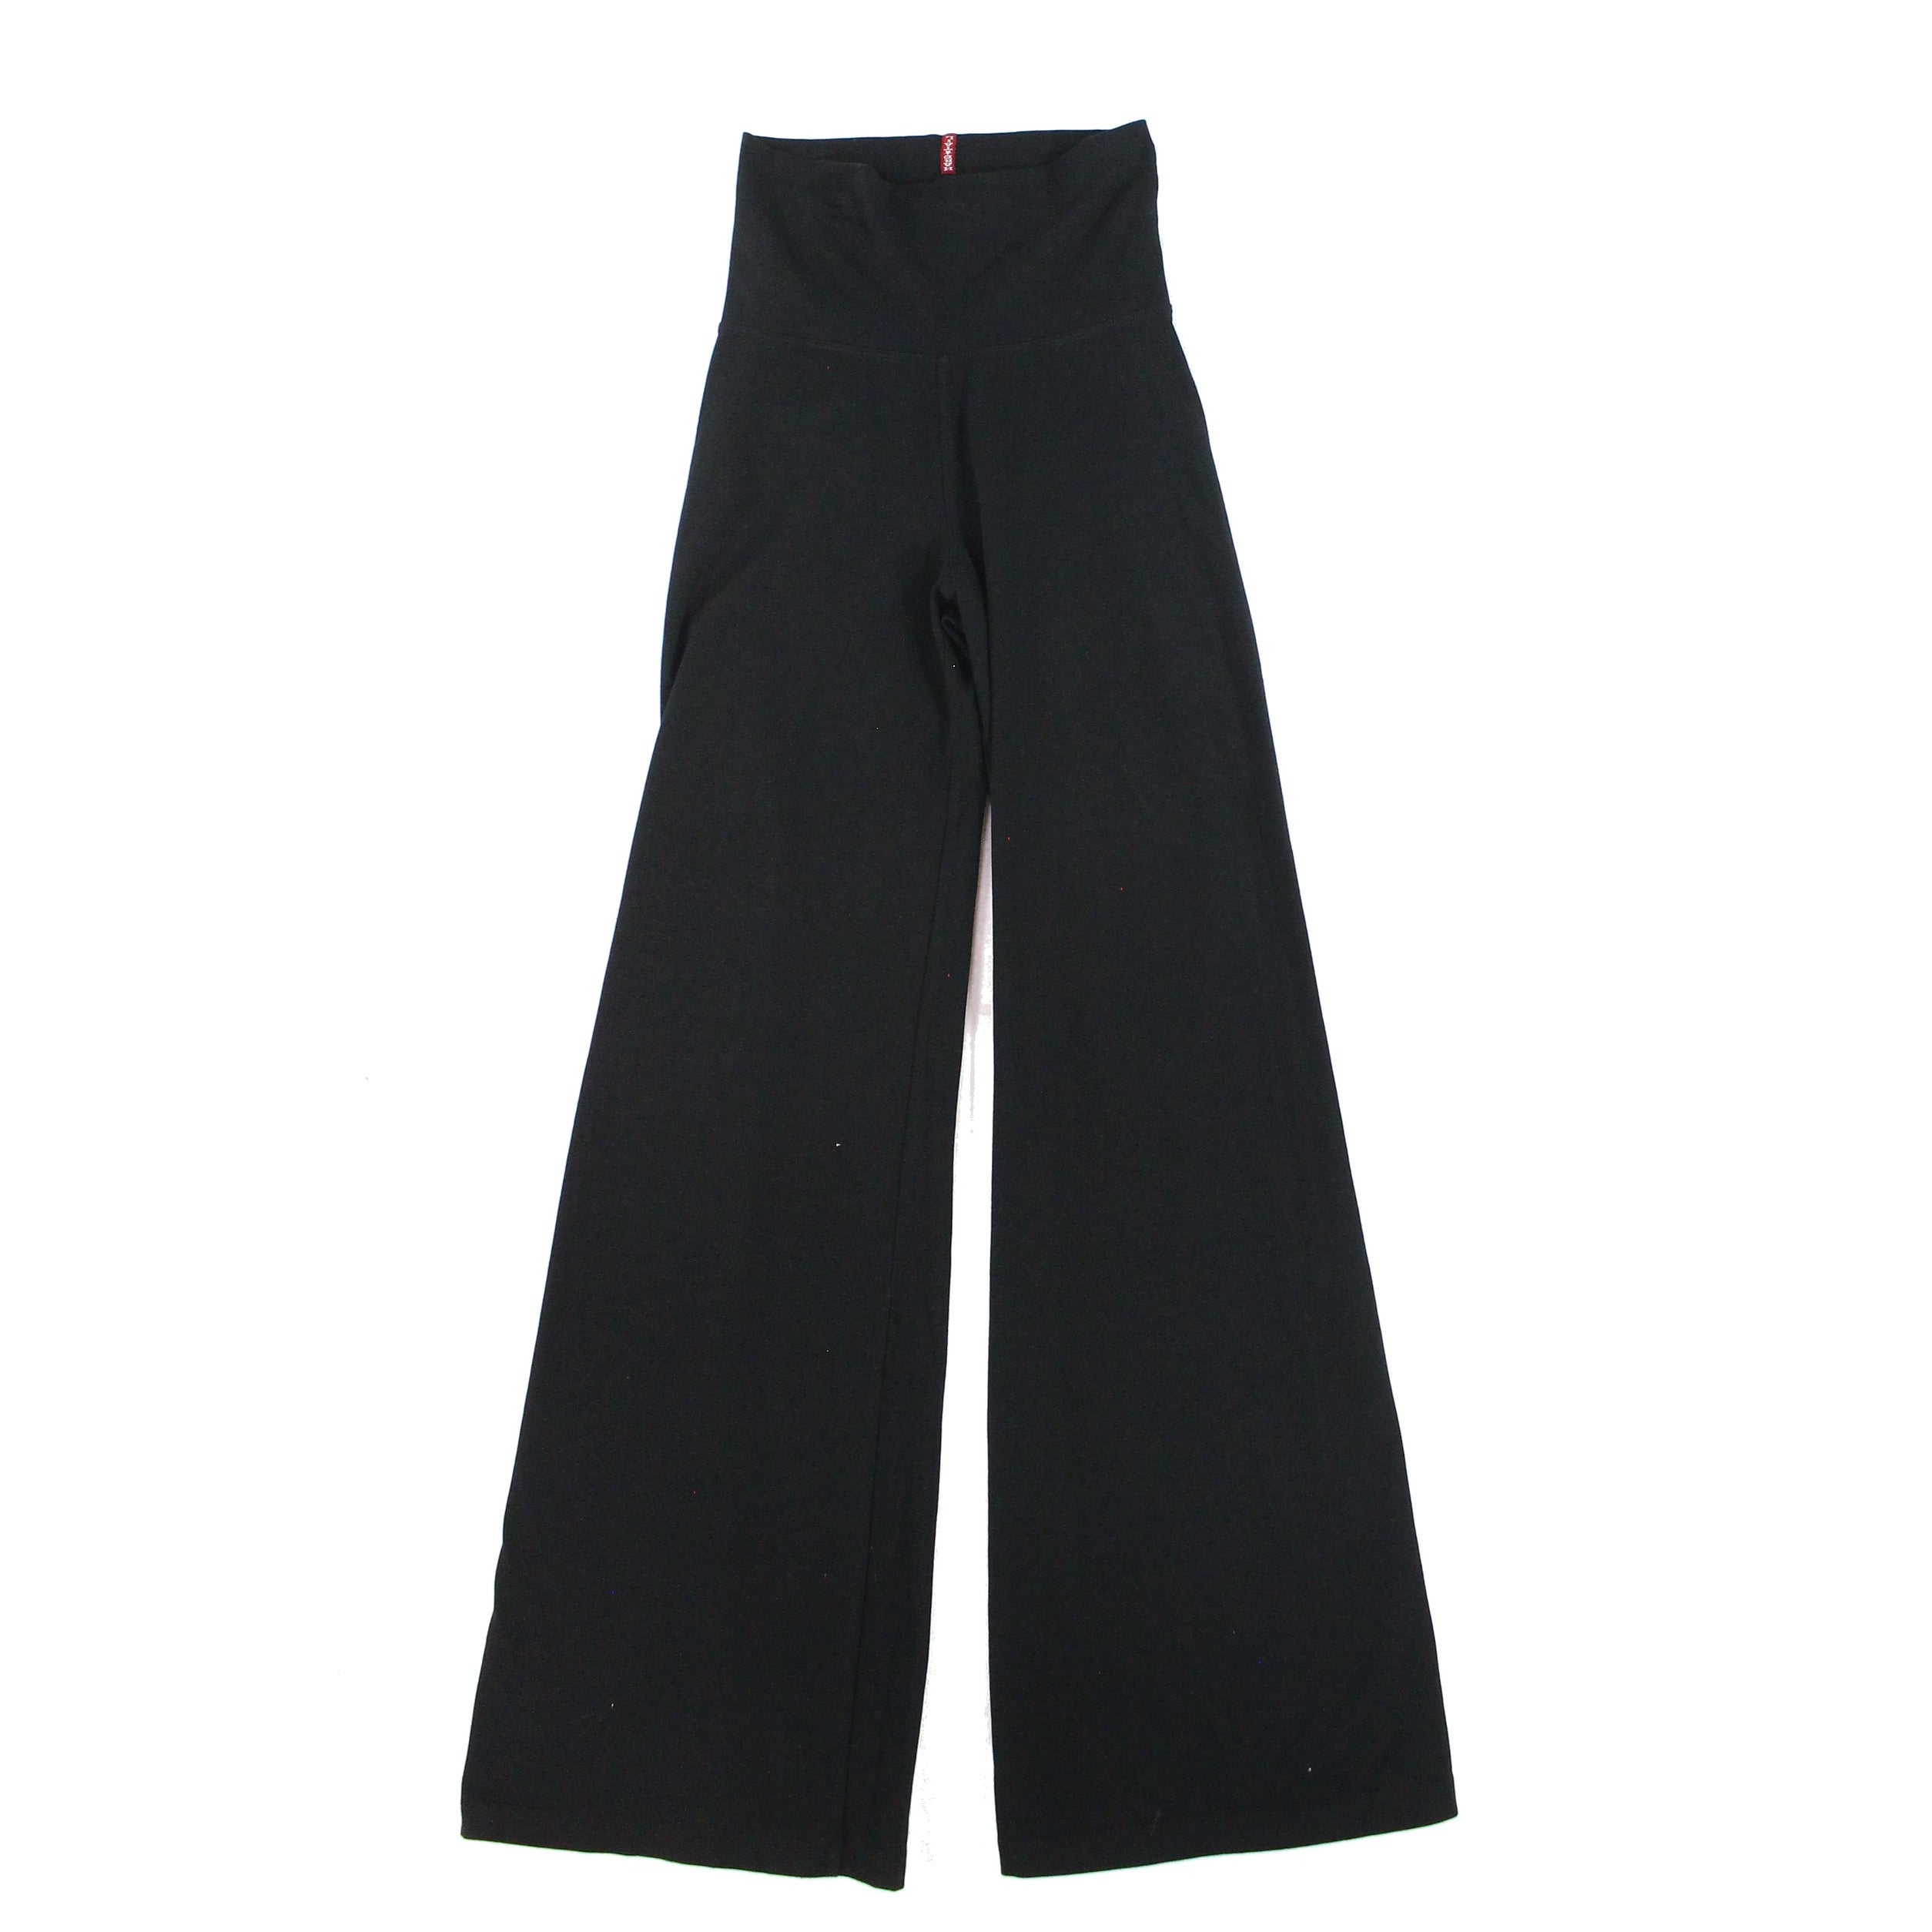 e3499f4a1b Shop Hard Tail Black Womens Size Small S Pull On Stretch Soft Pants - Free  Shipping On Orders Over $45 - Overstock - 27990090